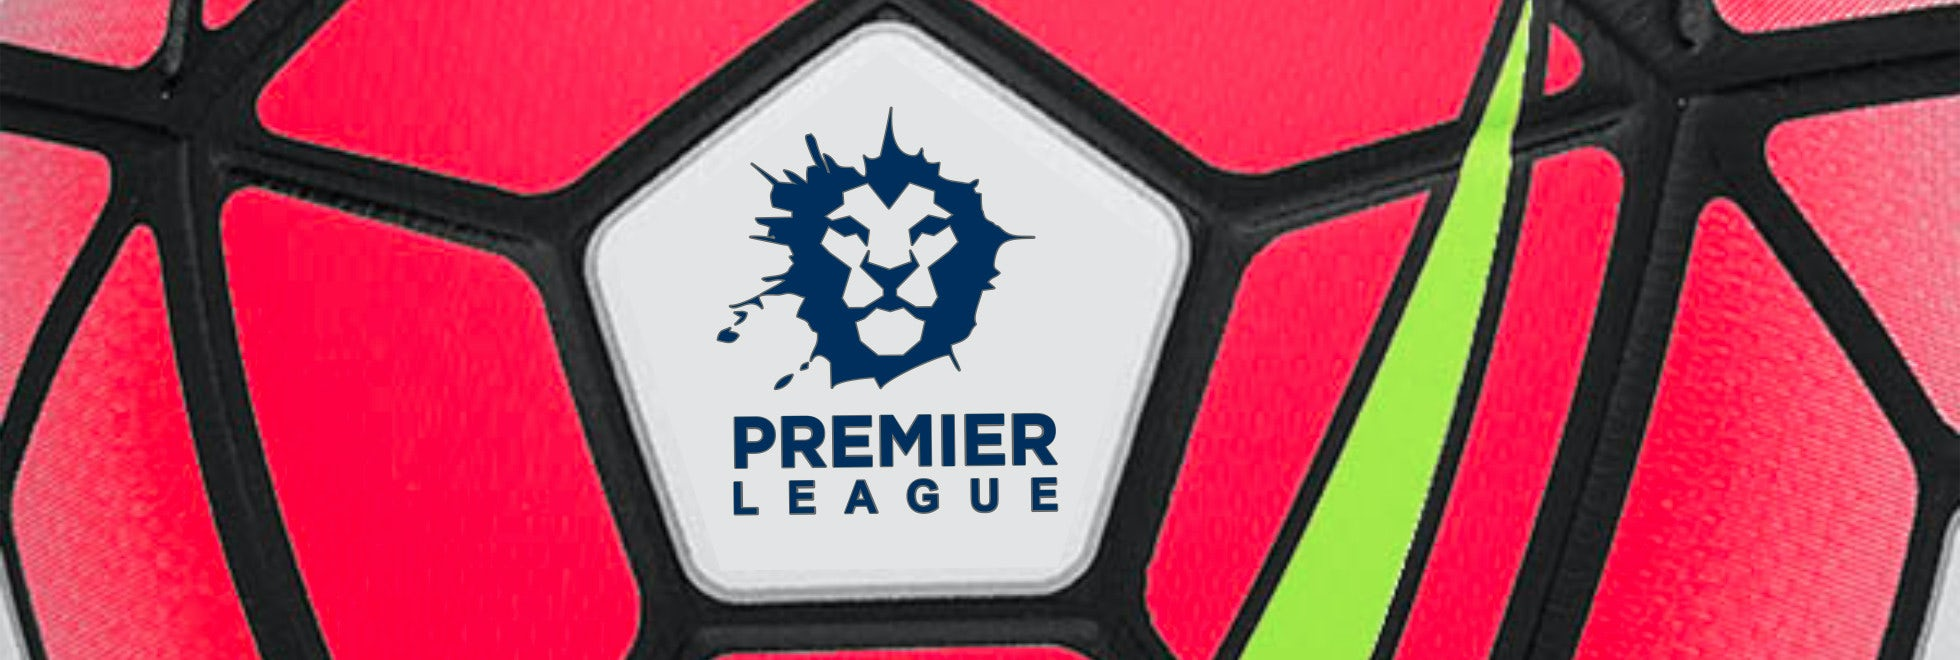 Branding mistakes made by the Premier League logo - 99designs